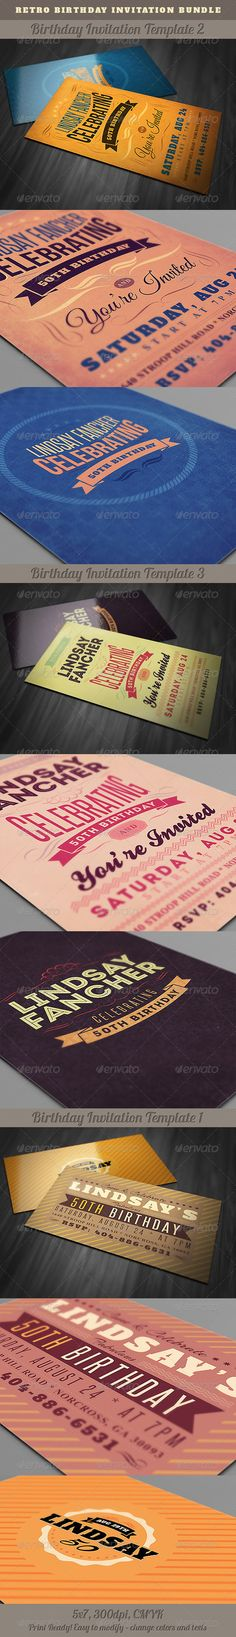 Birthday Invitation Ticket Card Invitation Templates Ticket - Retro birthday invitation template